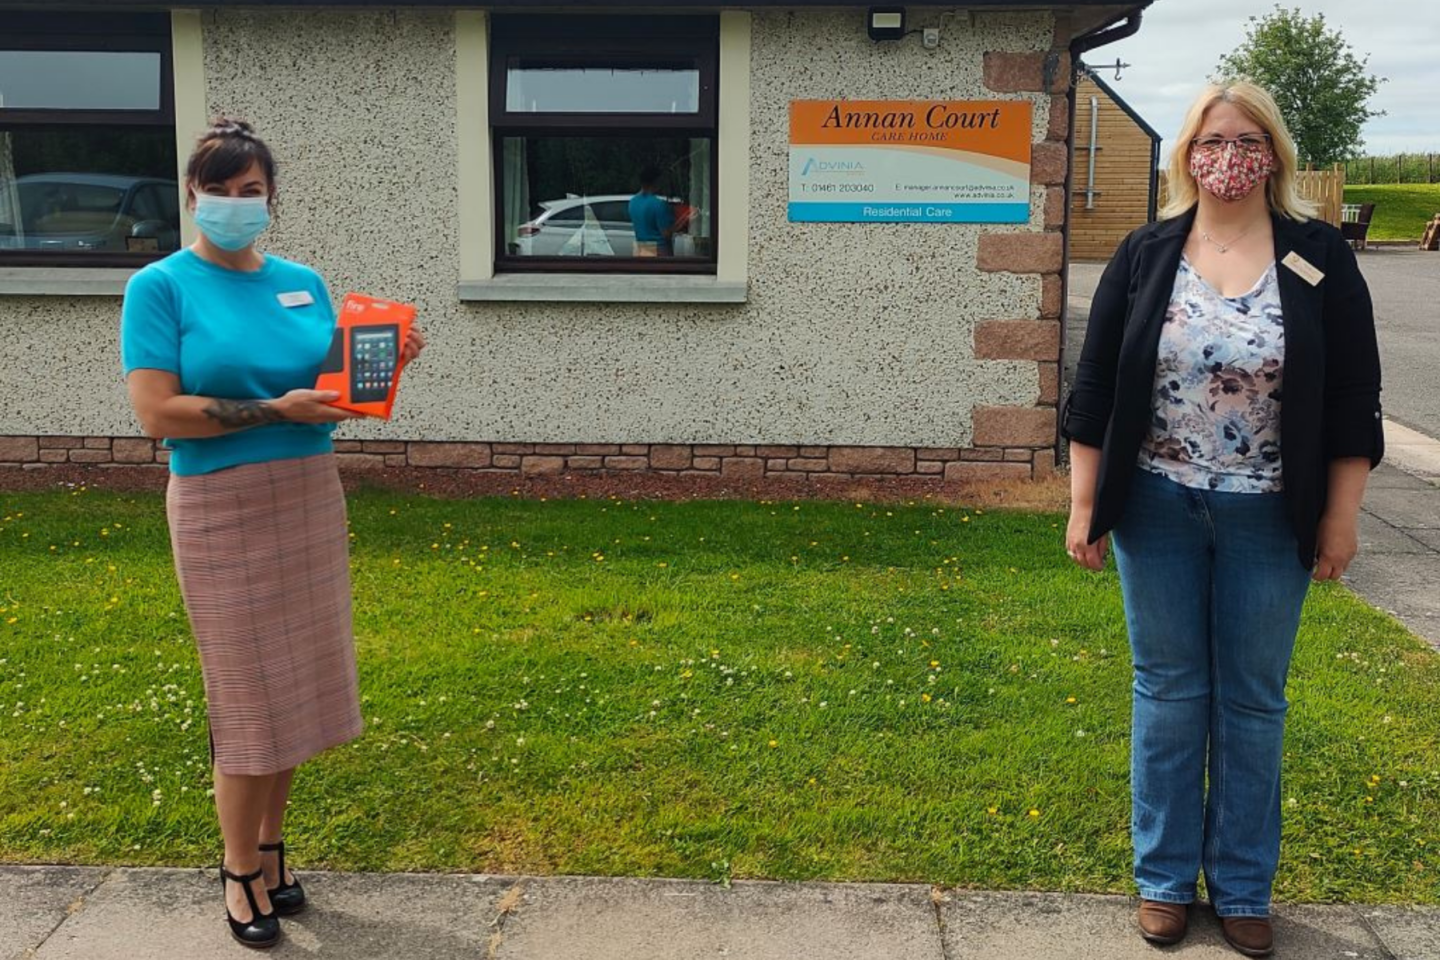 Local Rotary Club Presents Annan Court With Dementia-friendly Tablet Computers